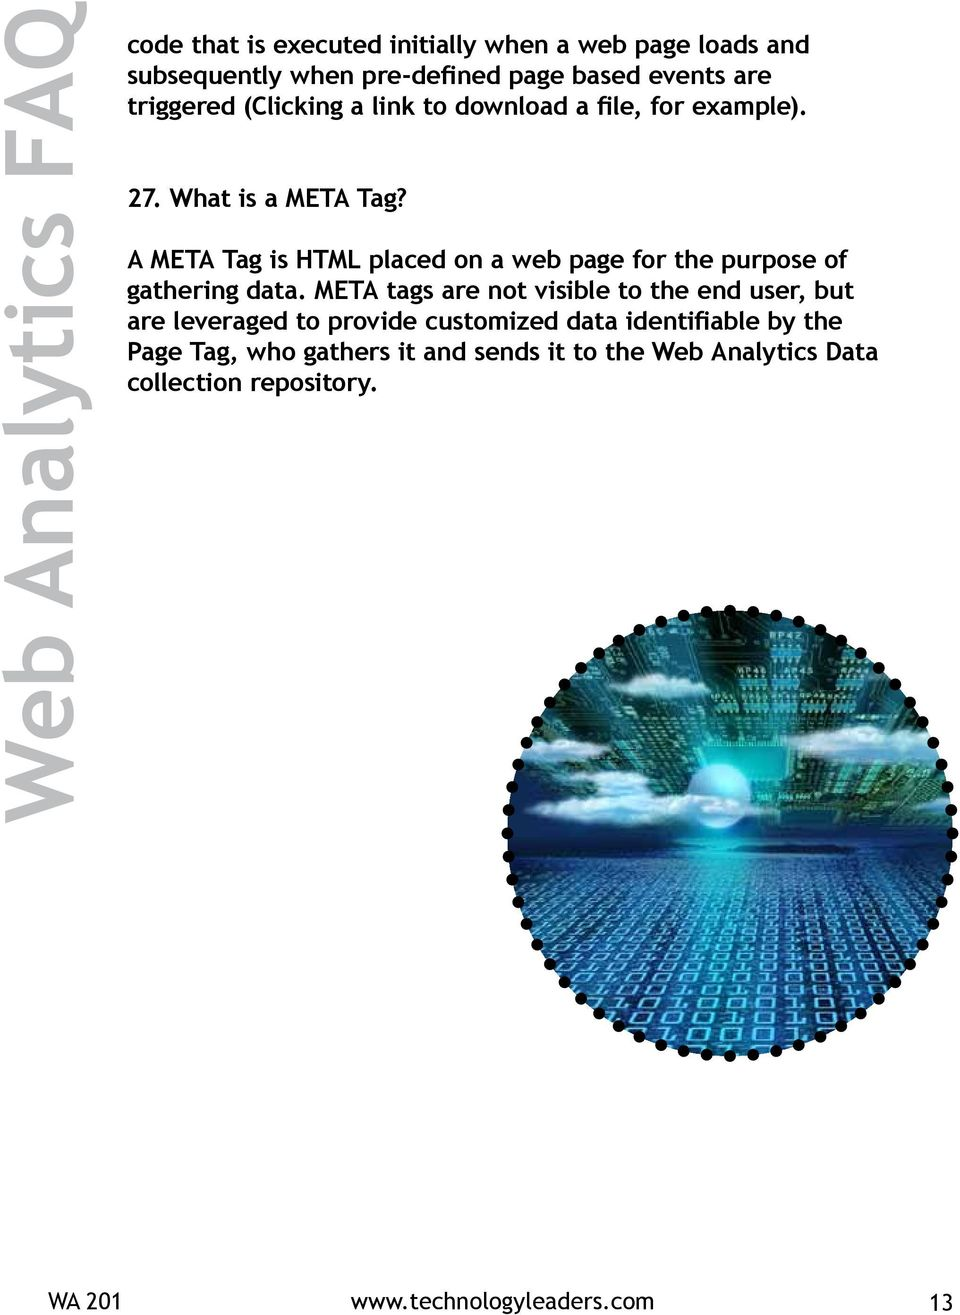 A META Tag is HTML placed on a web page for the purpose of gathering data.